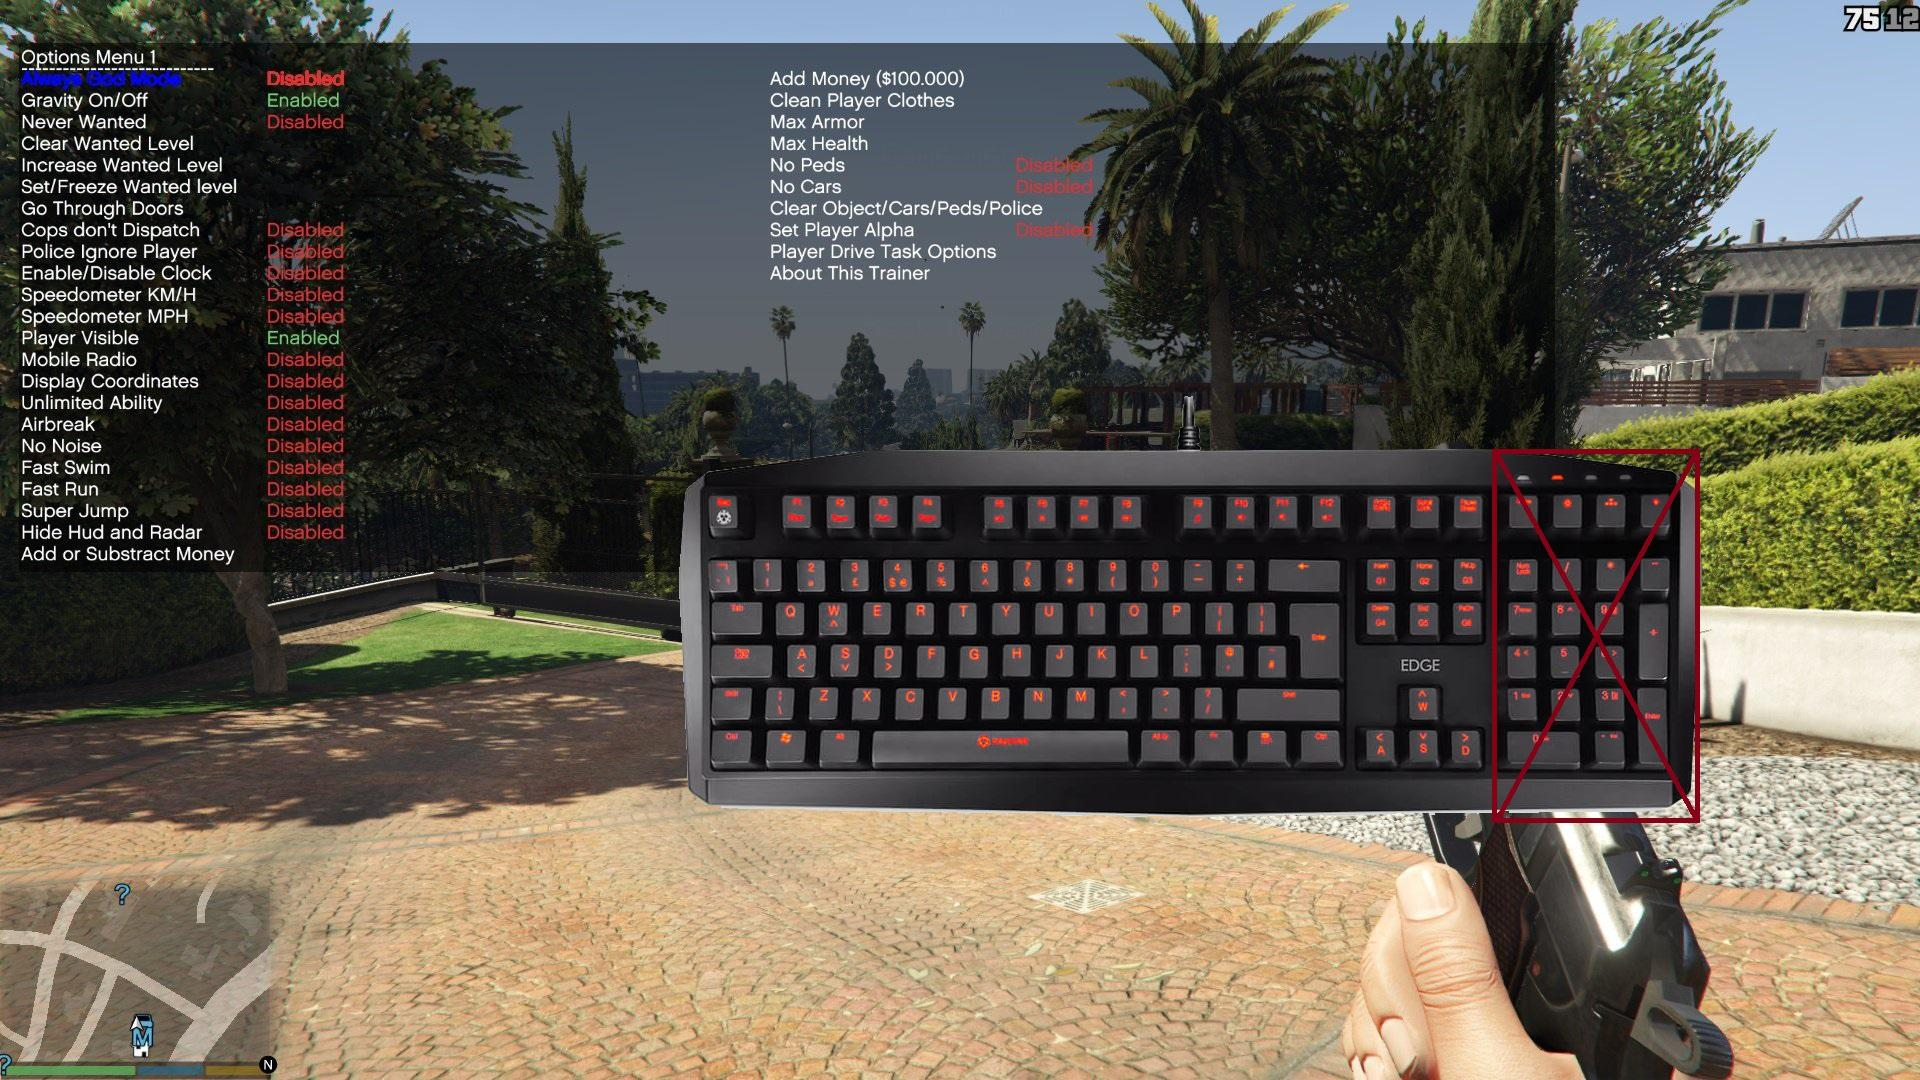 Simple Trainer for GTA V (For users who don't have number pad keys) - GTA5-Mods.com